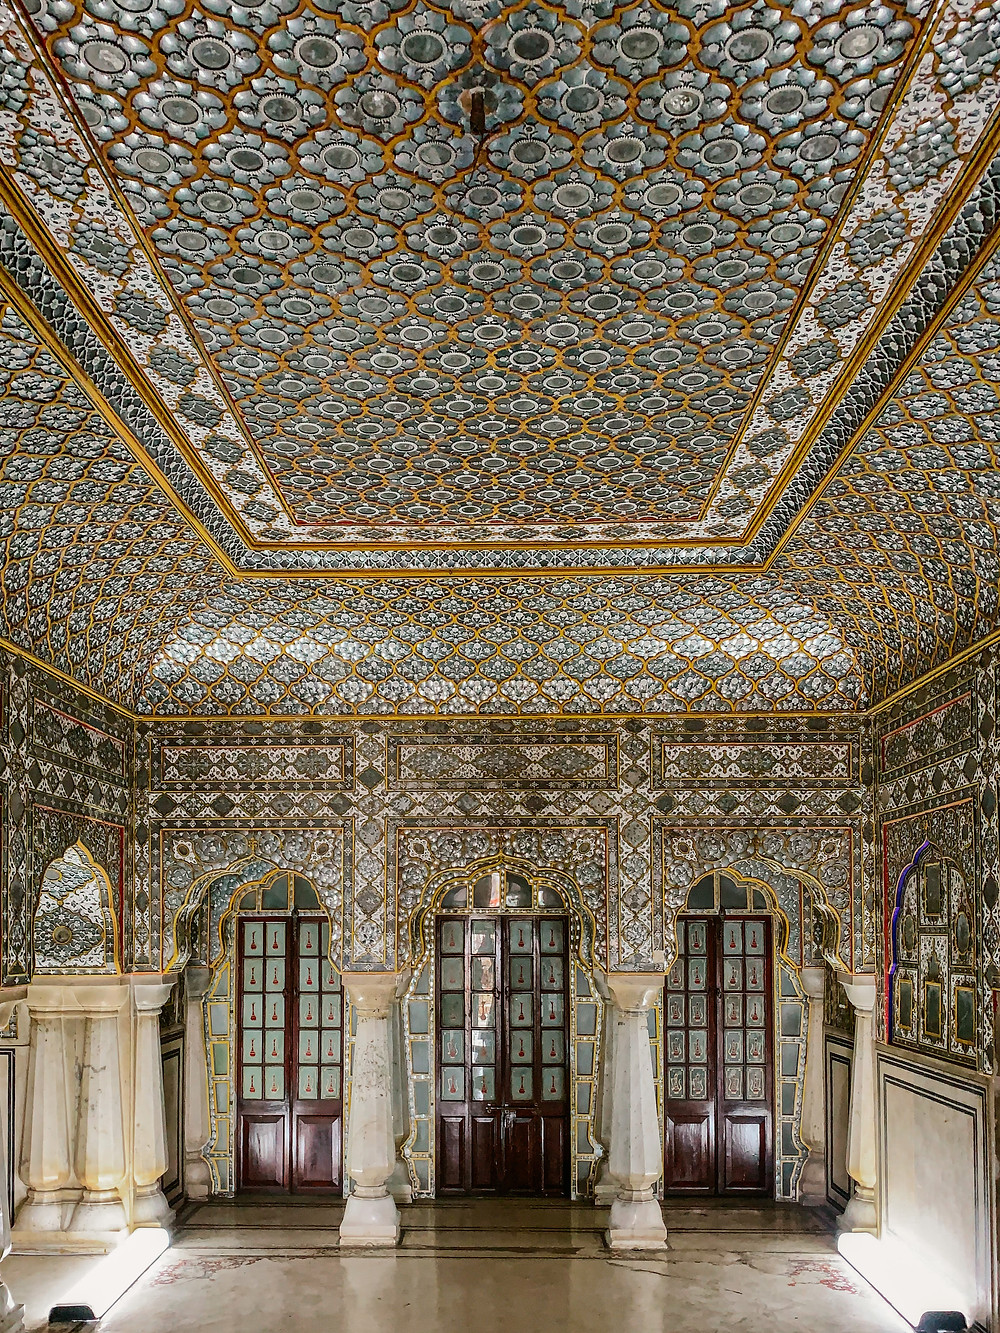 City Palace Jaipur Mirror room Sheesh Mahal. What to do and see in Jaipur. Must see Jaipur. Top sights Jaipur.  Free things to do in Jaipur